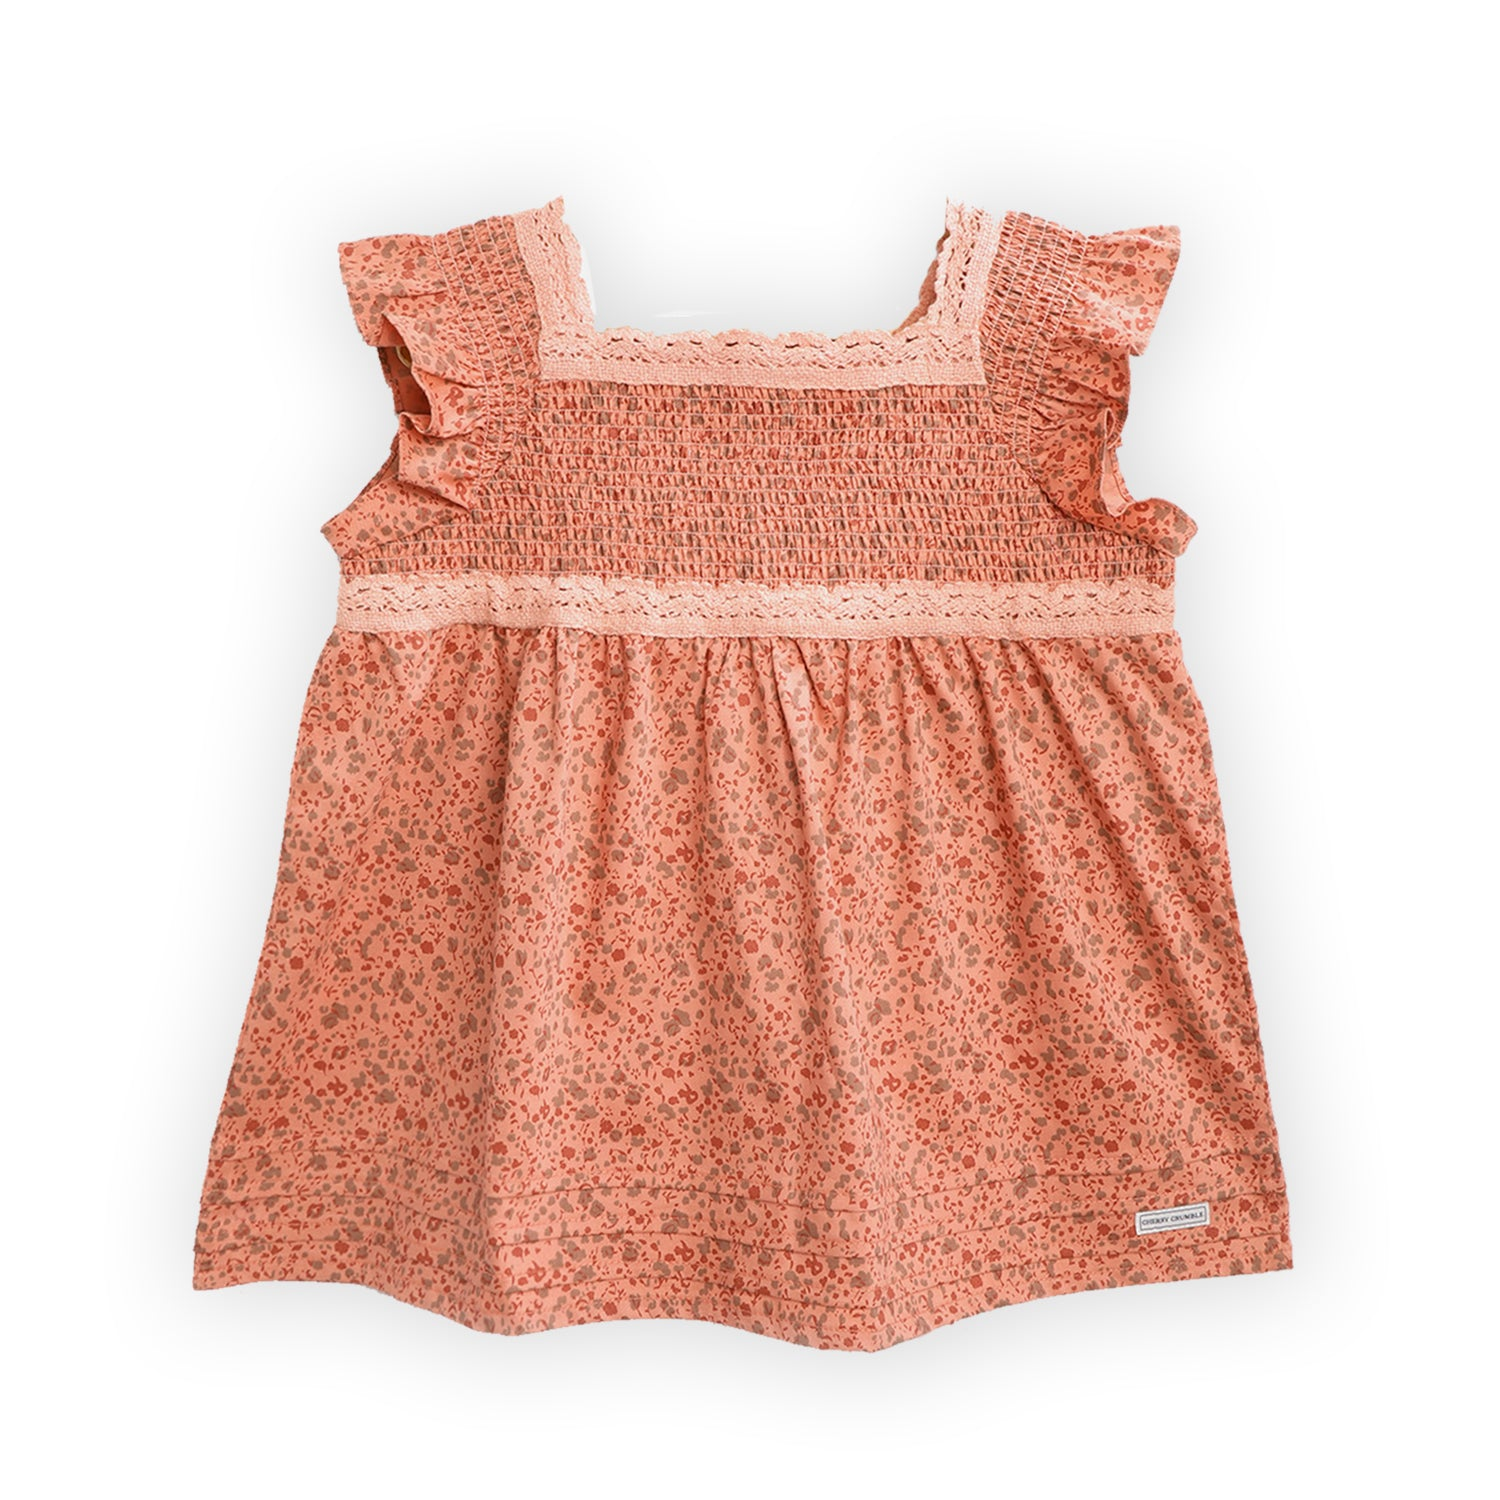 kids-peach ruffle nightsuit-ws-gnsuit-6194pch